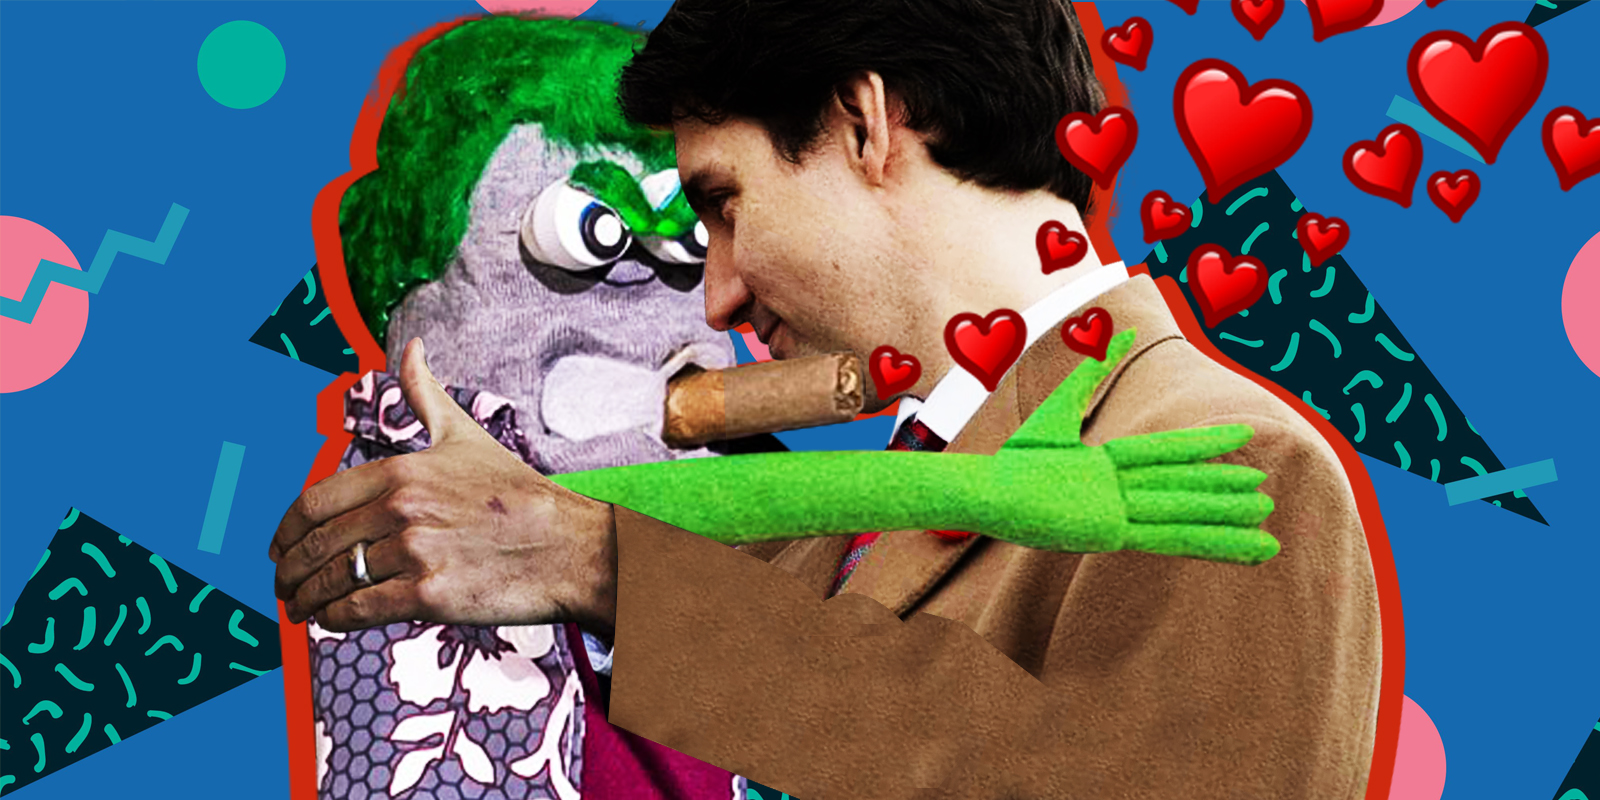 If the sock fits: Ed the Sock is the perfect bootlicker for Justin Trudeau